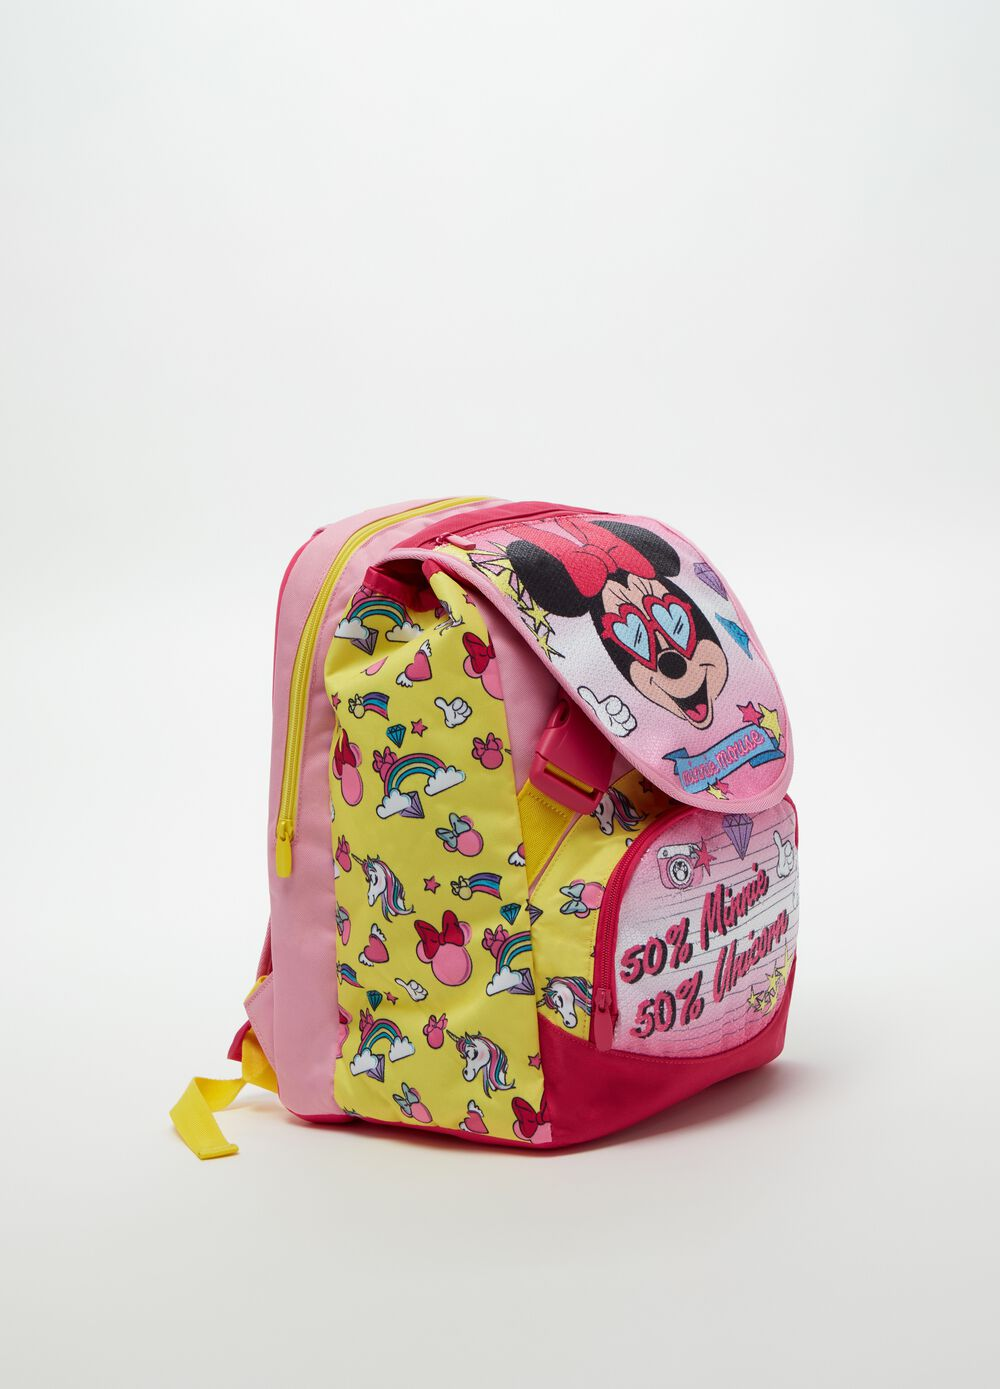 Disney Minnie Mouse backpack.